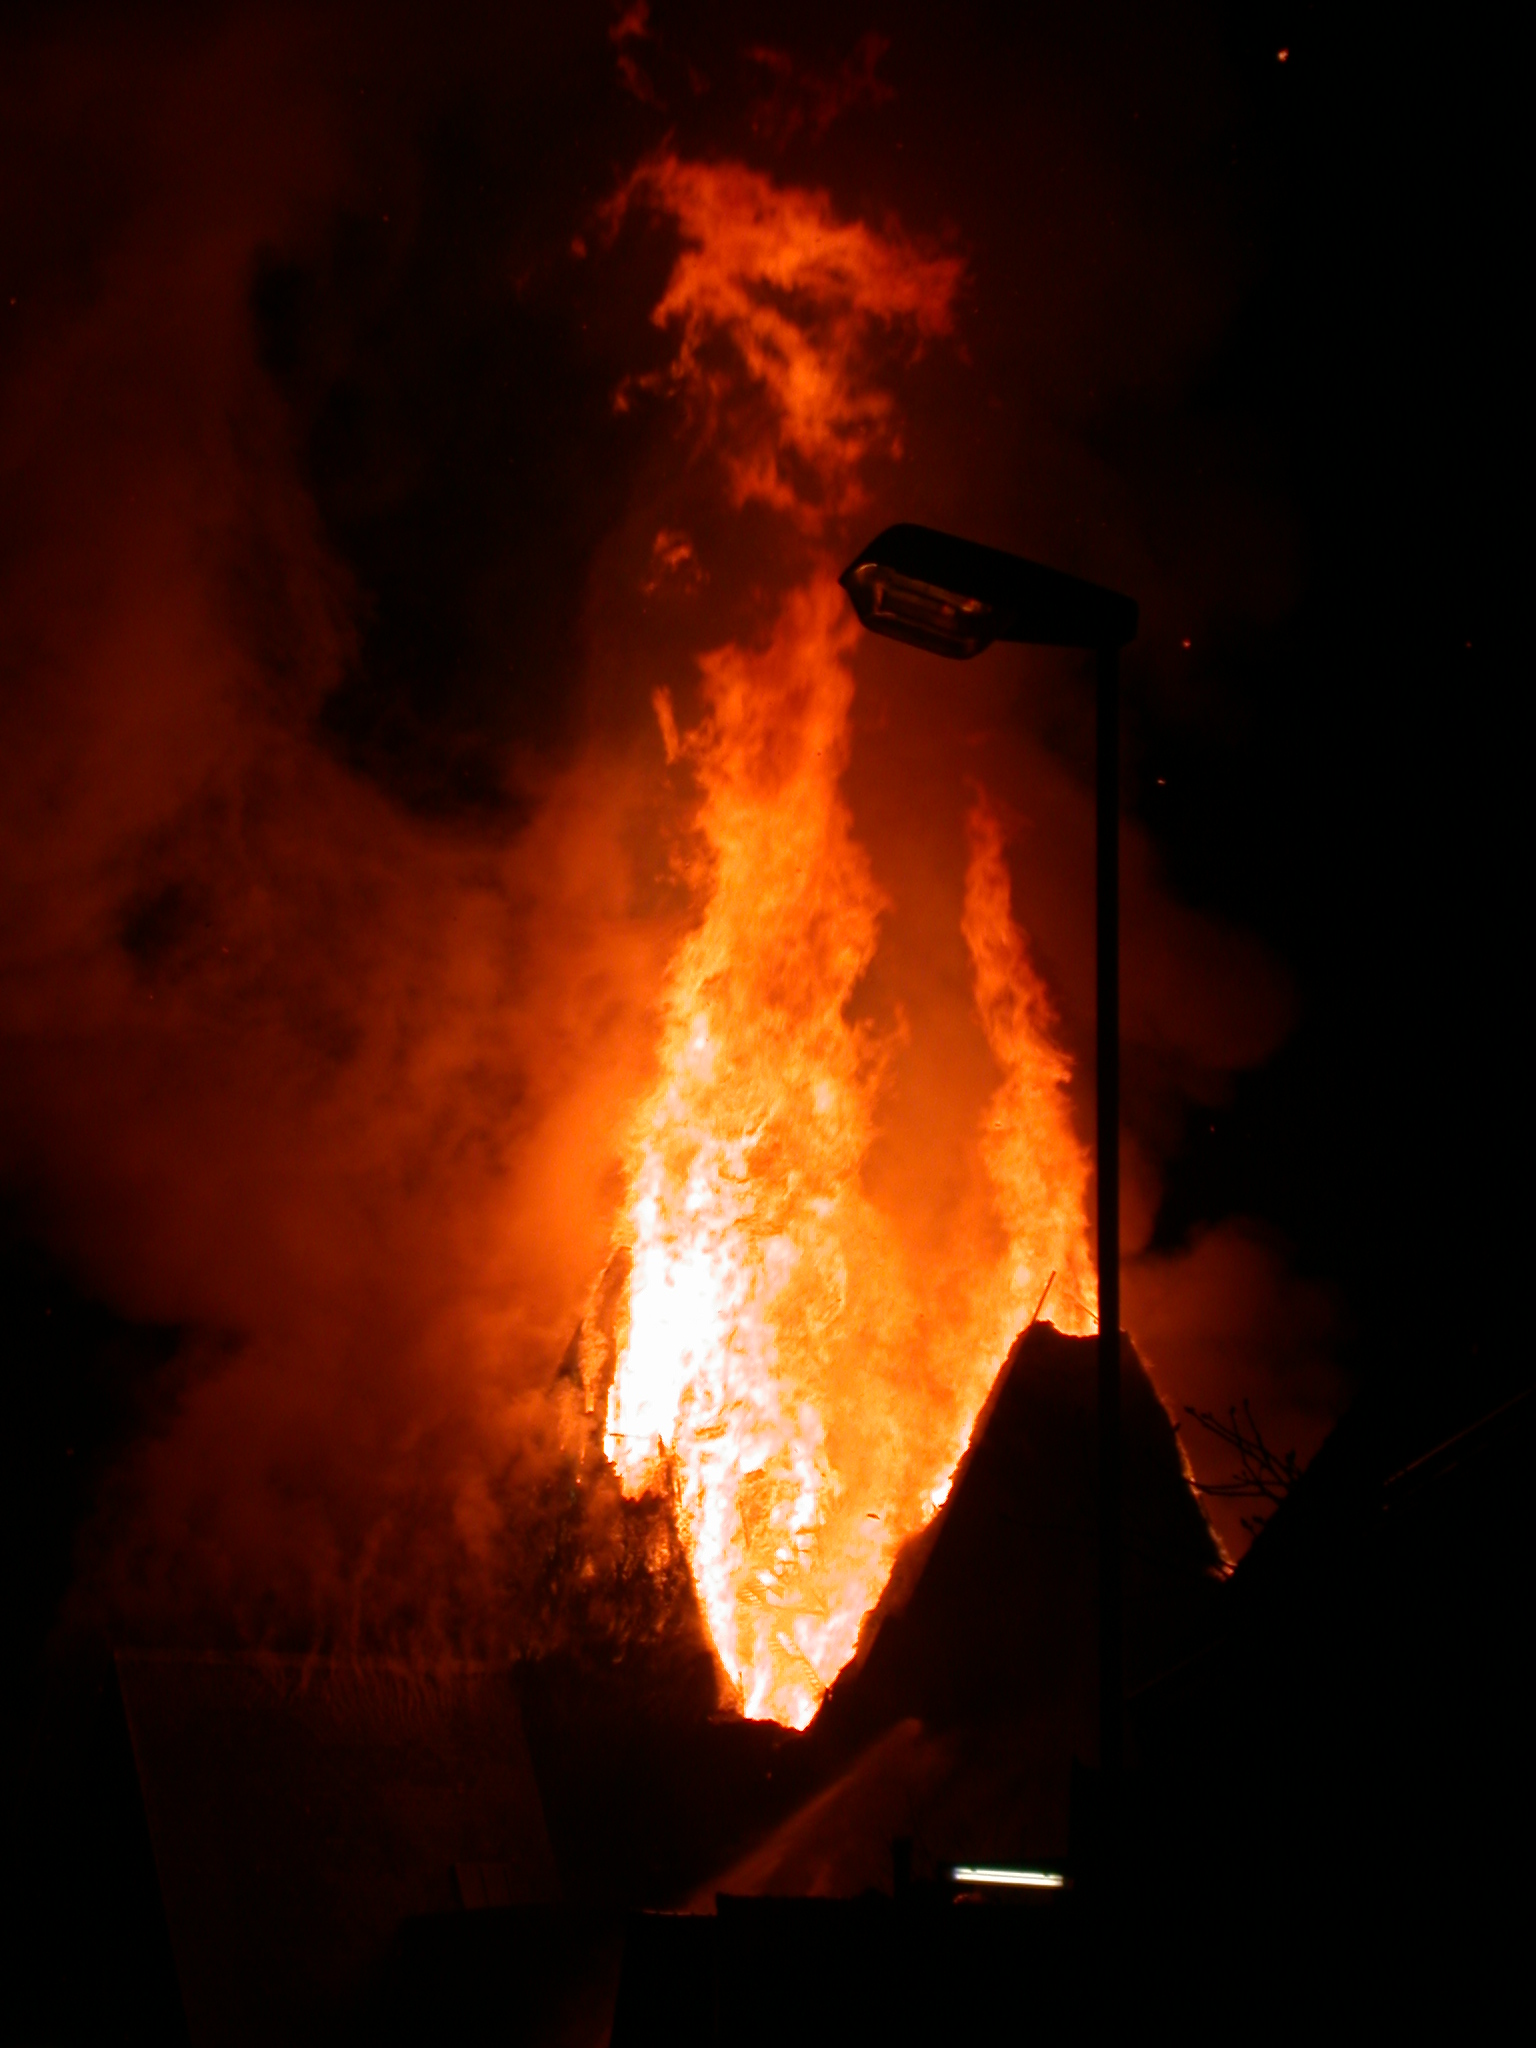 burn burning flame flames bonfire house going up in night sky dark roaring fire tongues of